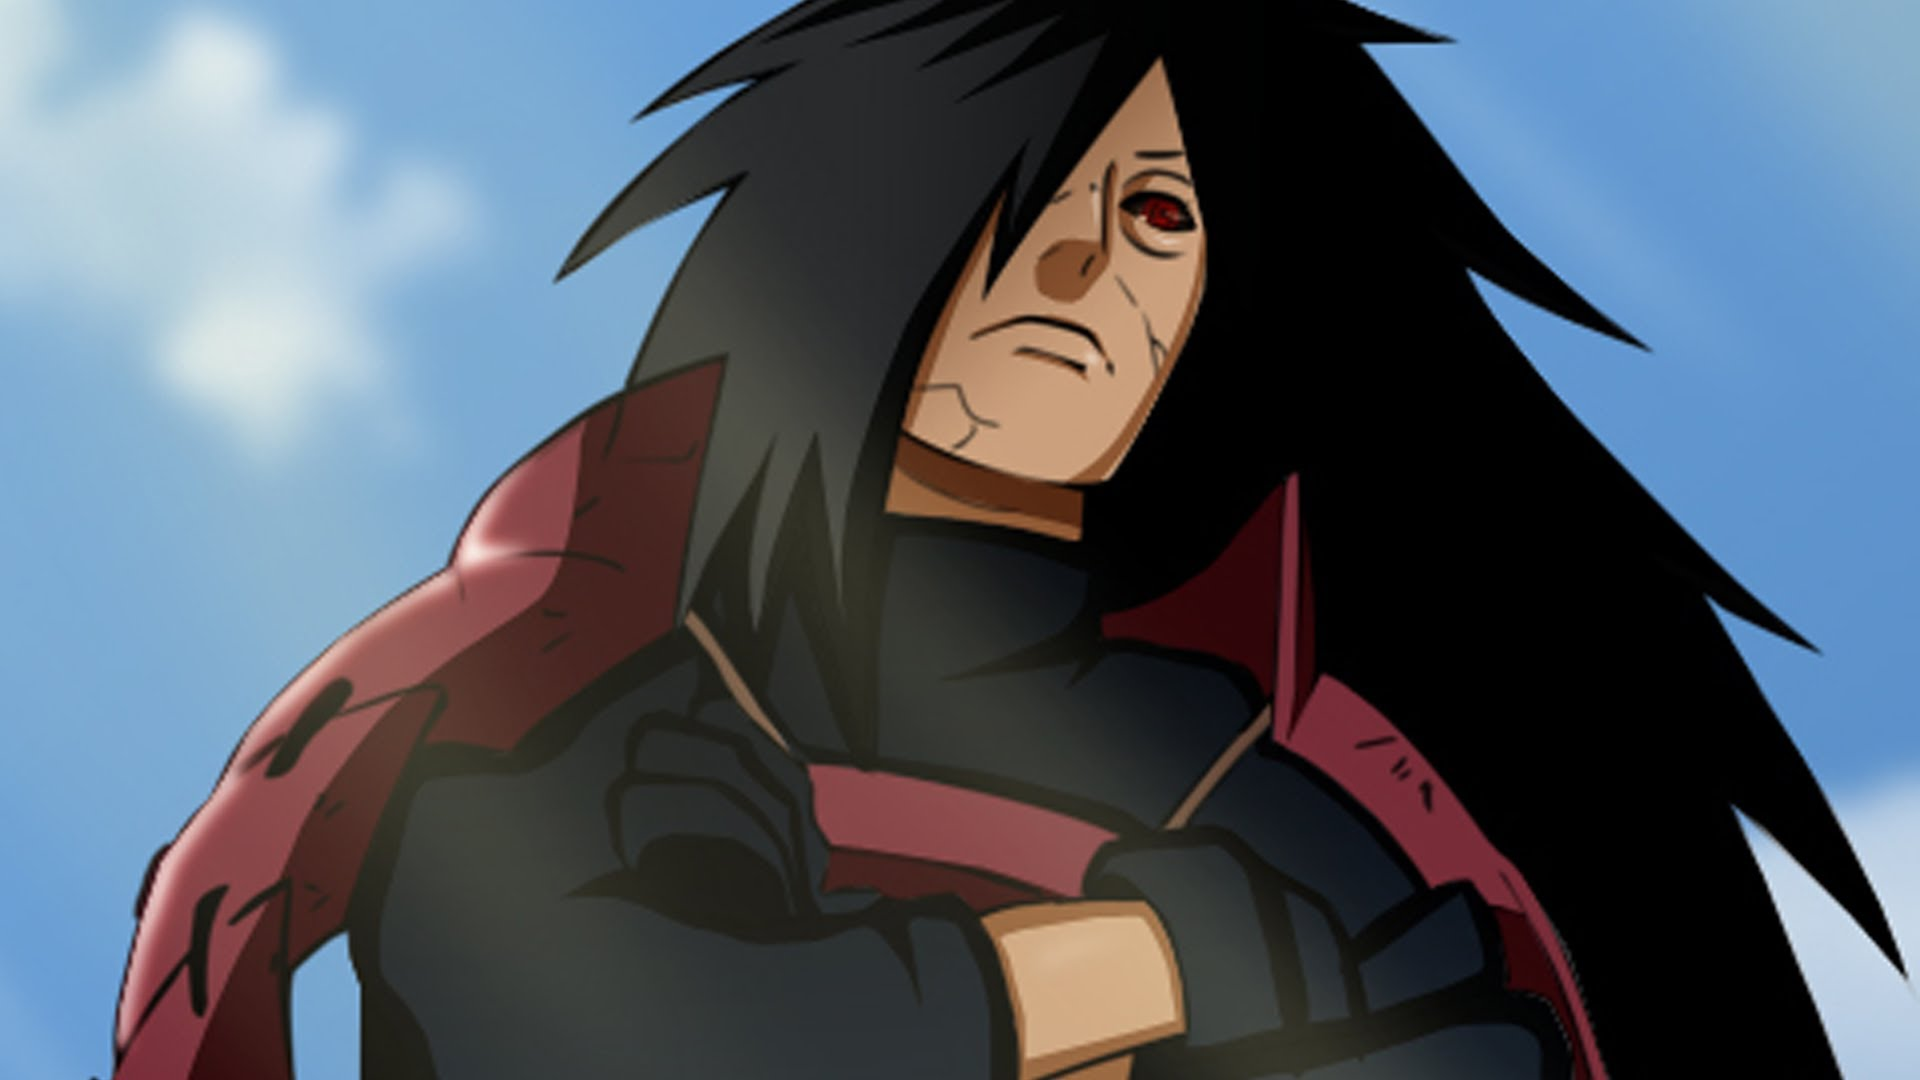 Uchiha Madara Wallpapers High Quality Download 1920x1080